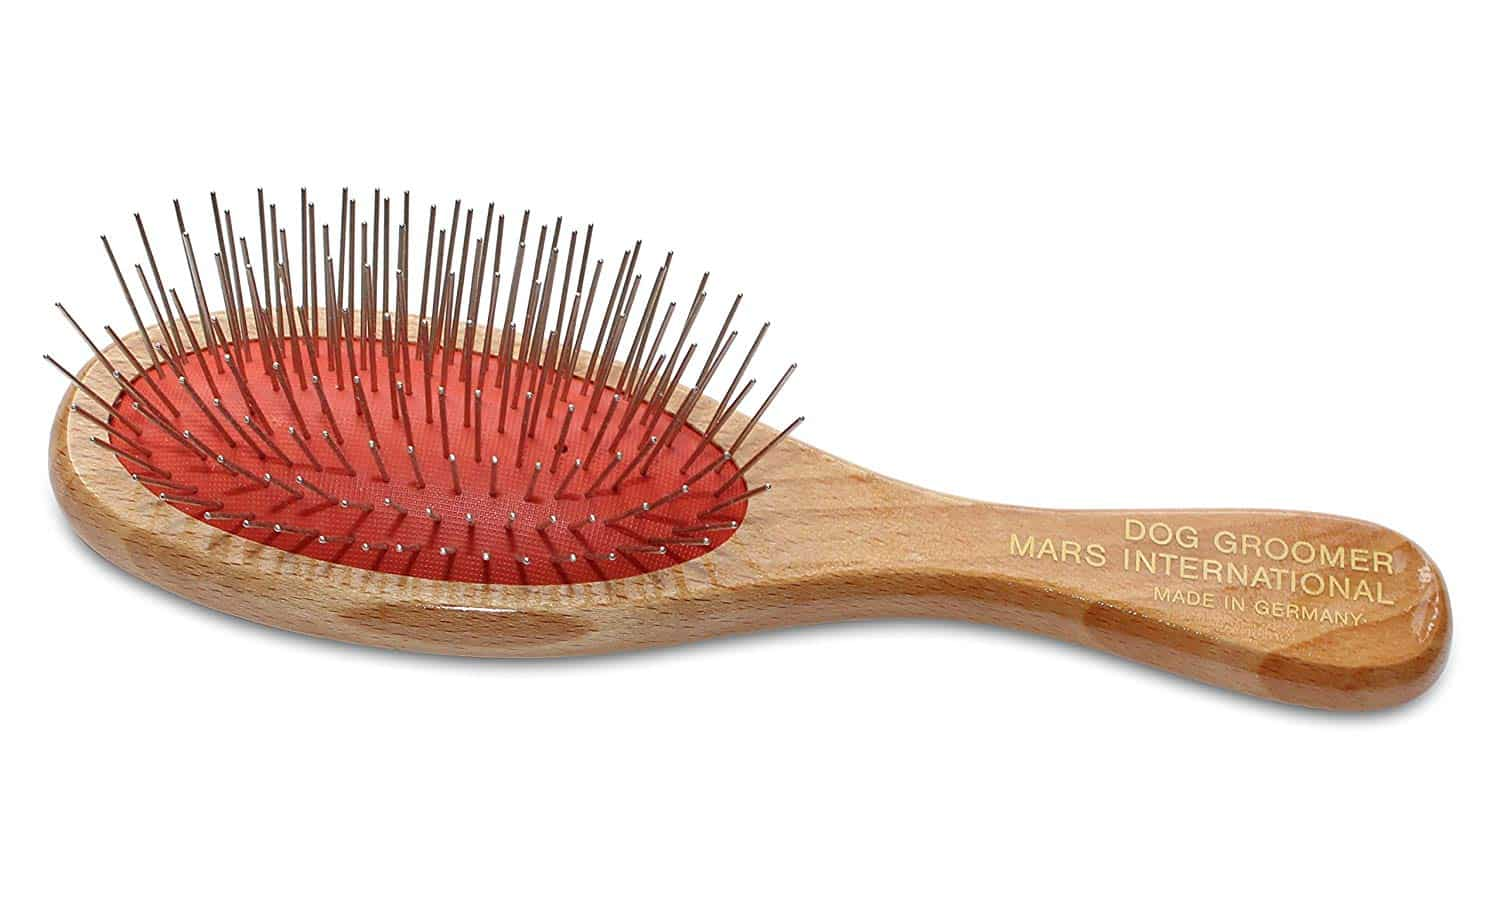 Mars Professional Grooming Brush